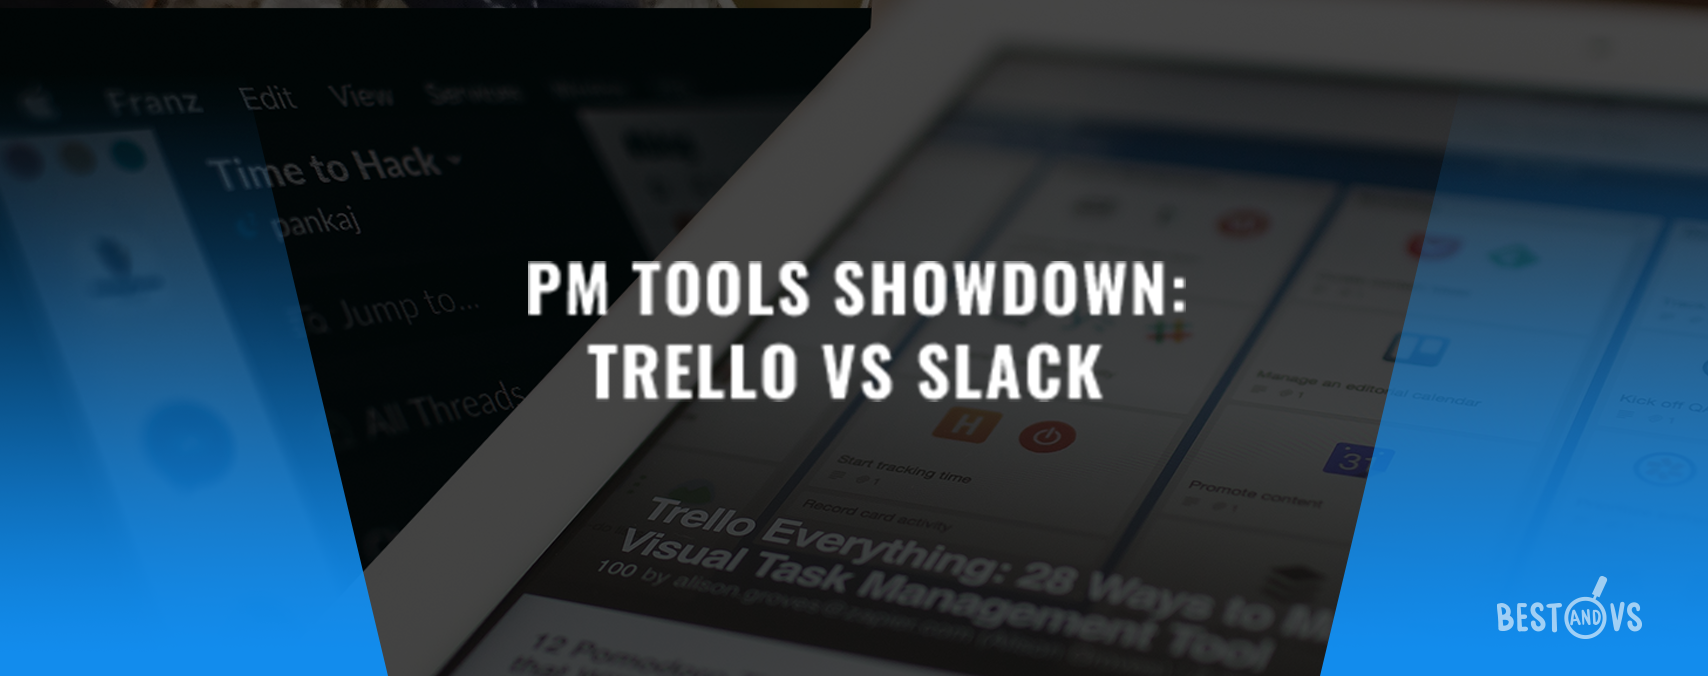 PM Tools Showdown: Trello VS Slack (Features & Pricing)